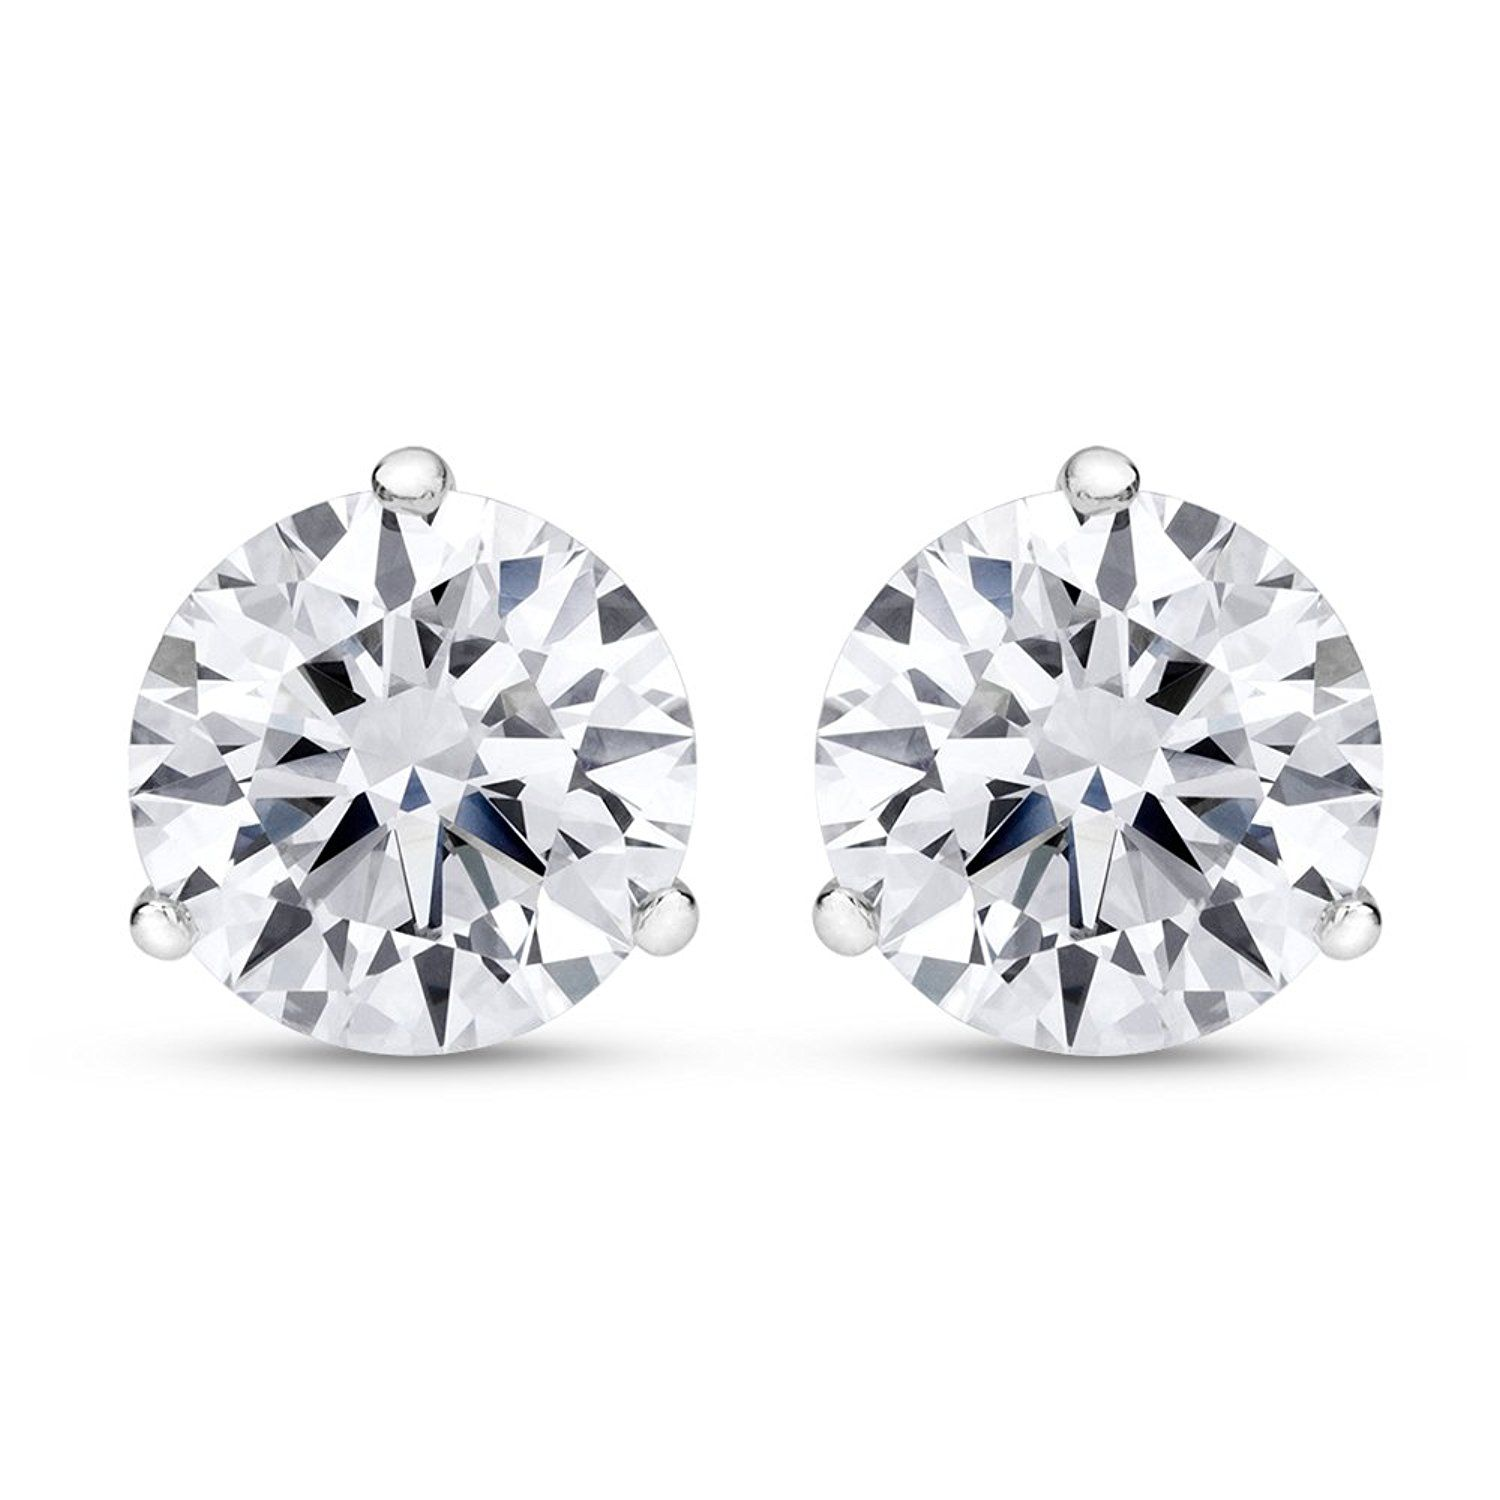 jewelry diamond cartilage steel piercing shop stud cz product pcs phoenix earrings tragus rakuten prong stainless